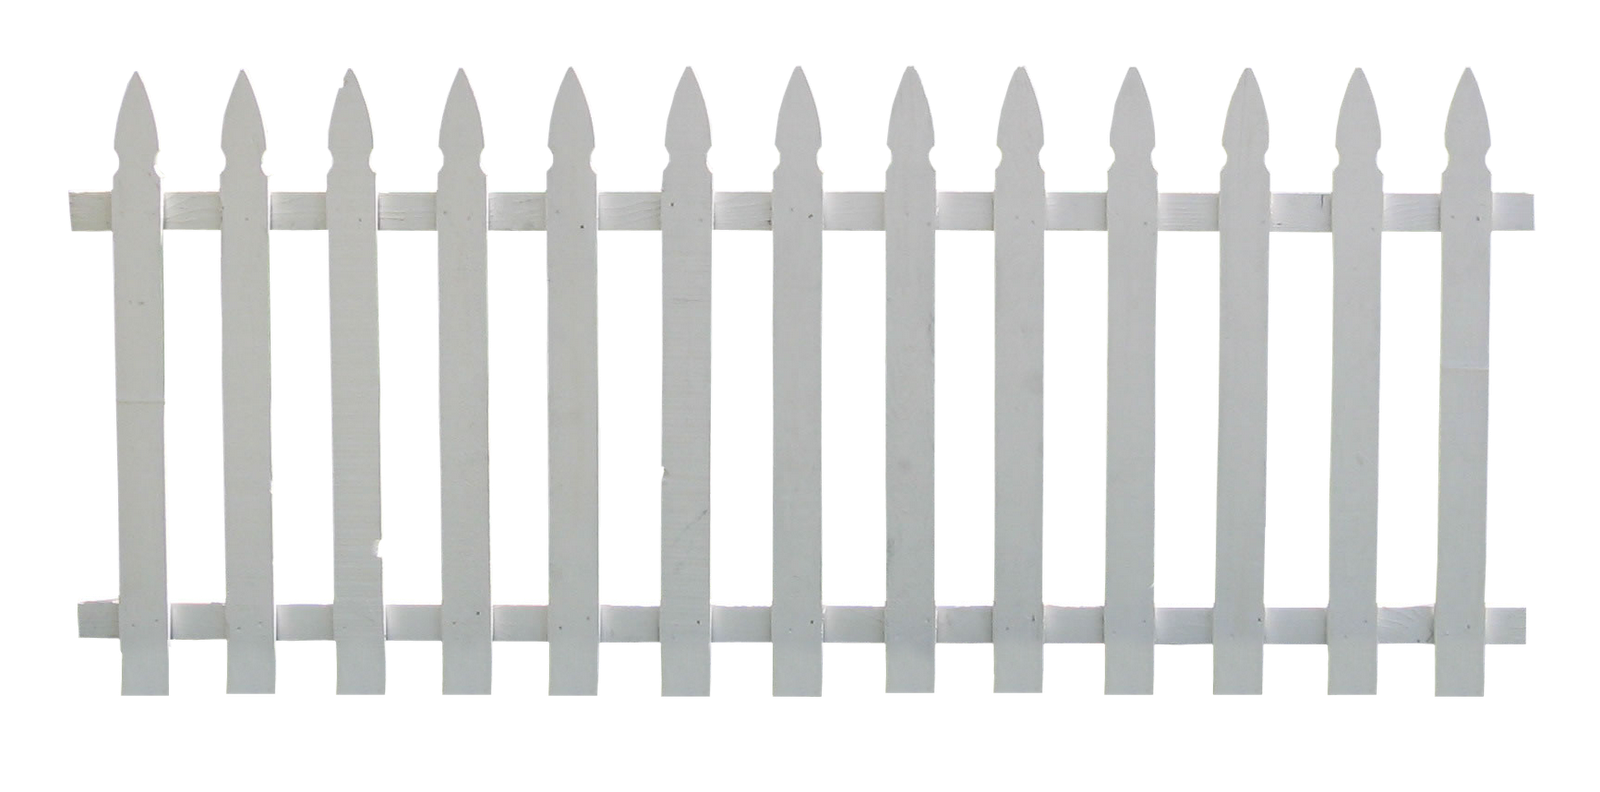 Fencing drawing simple